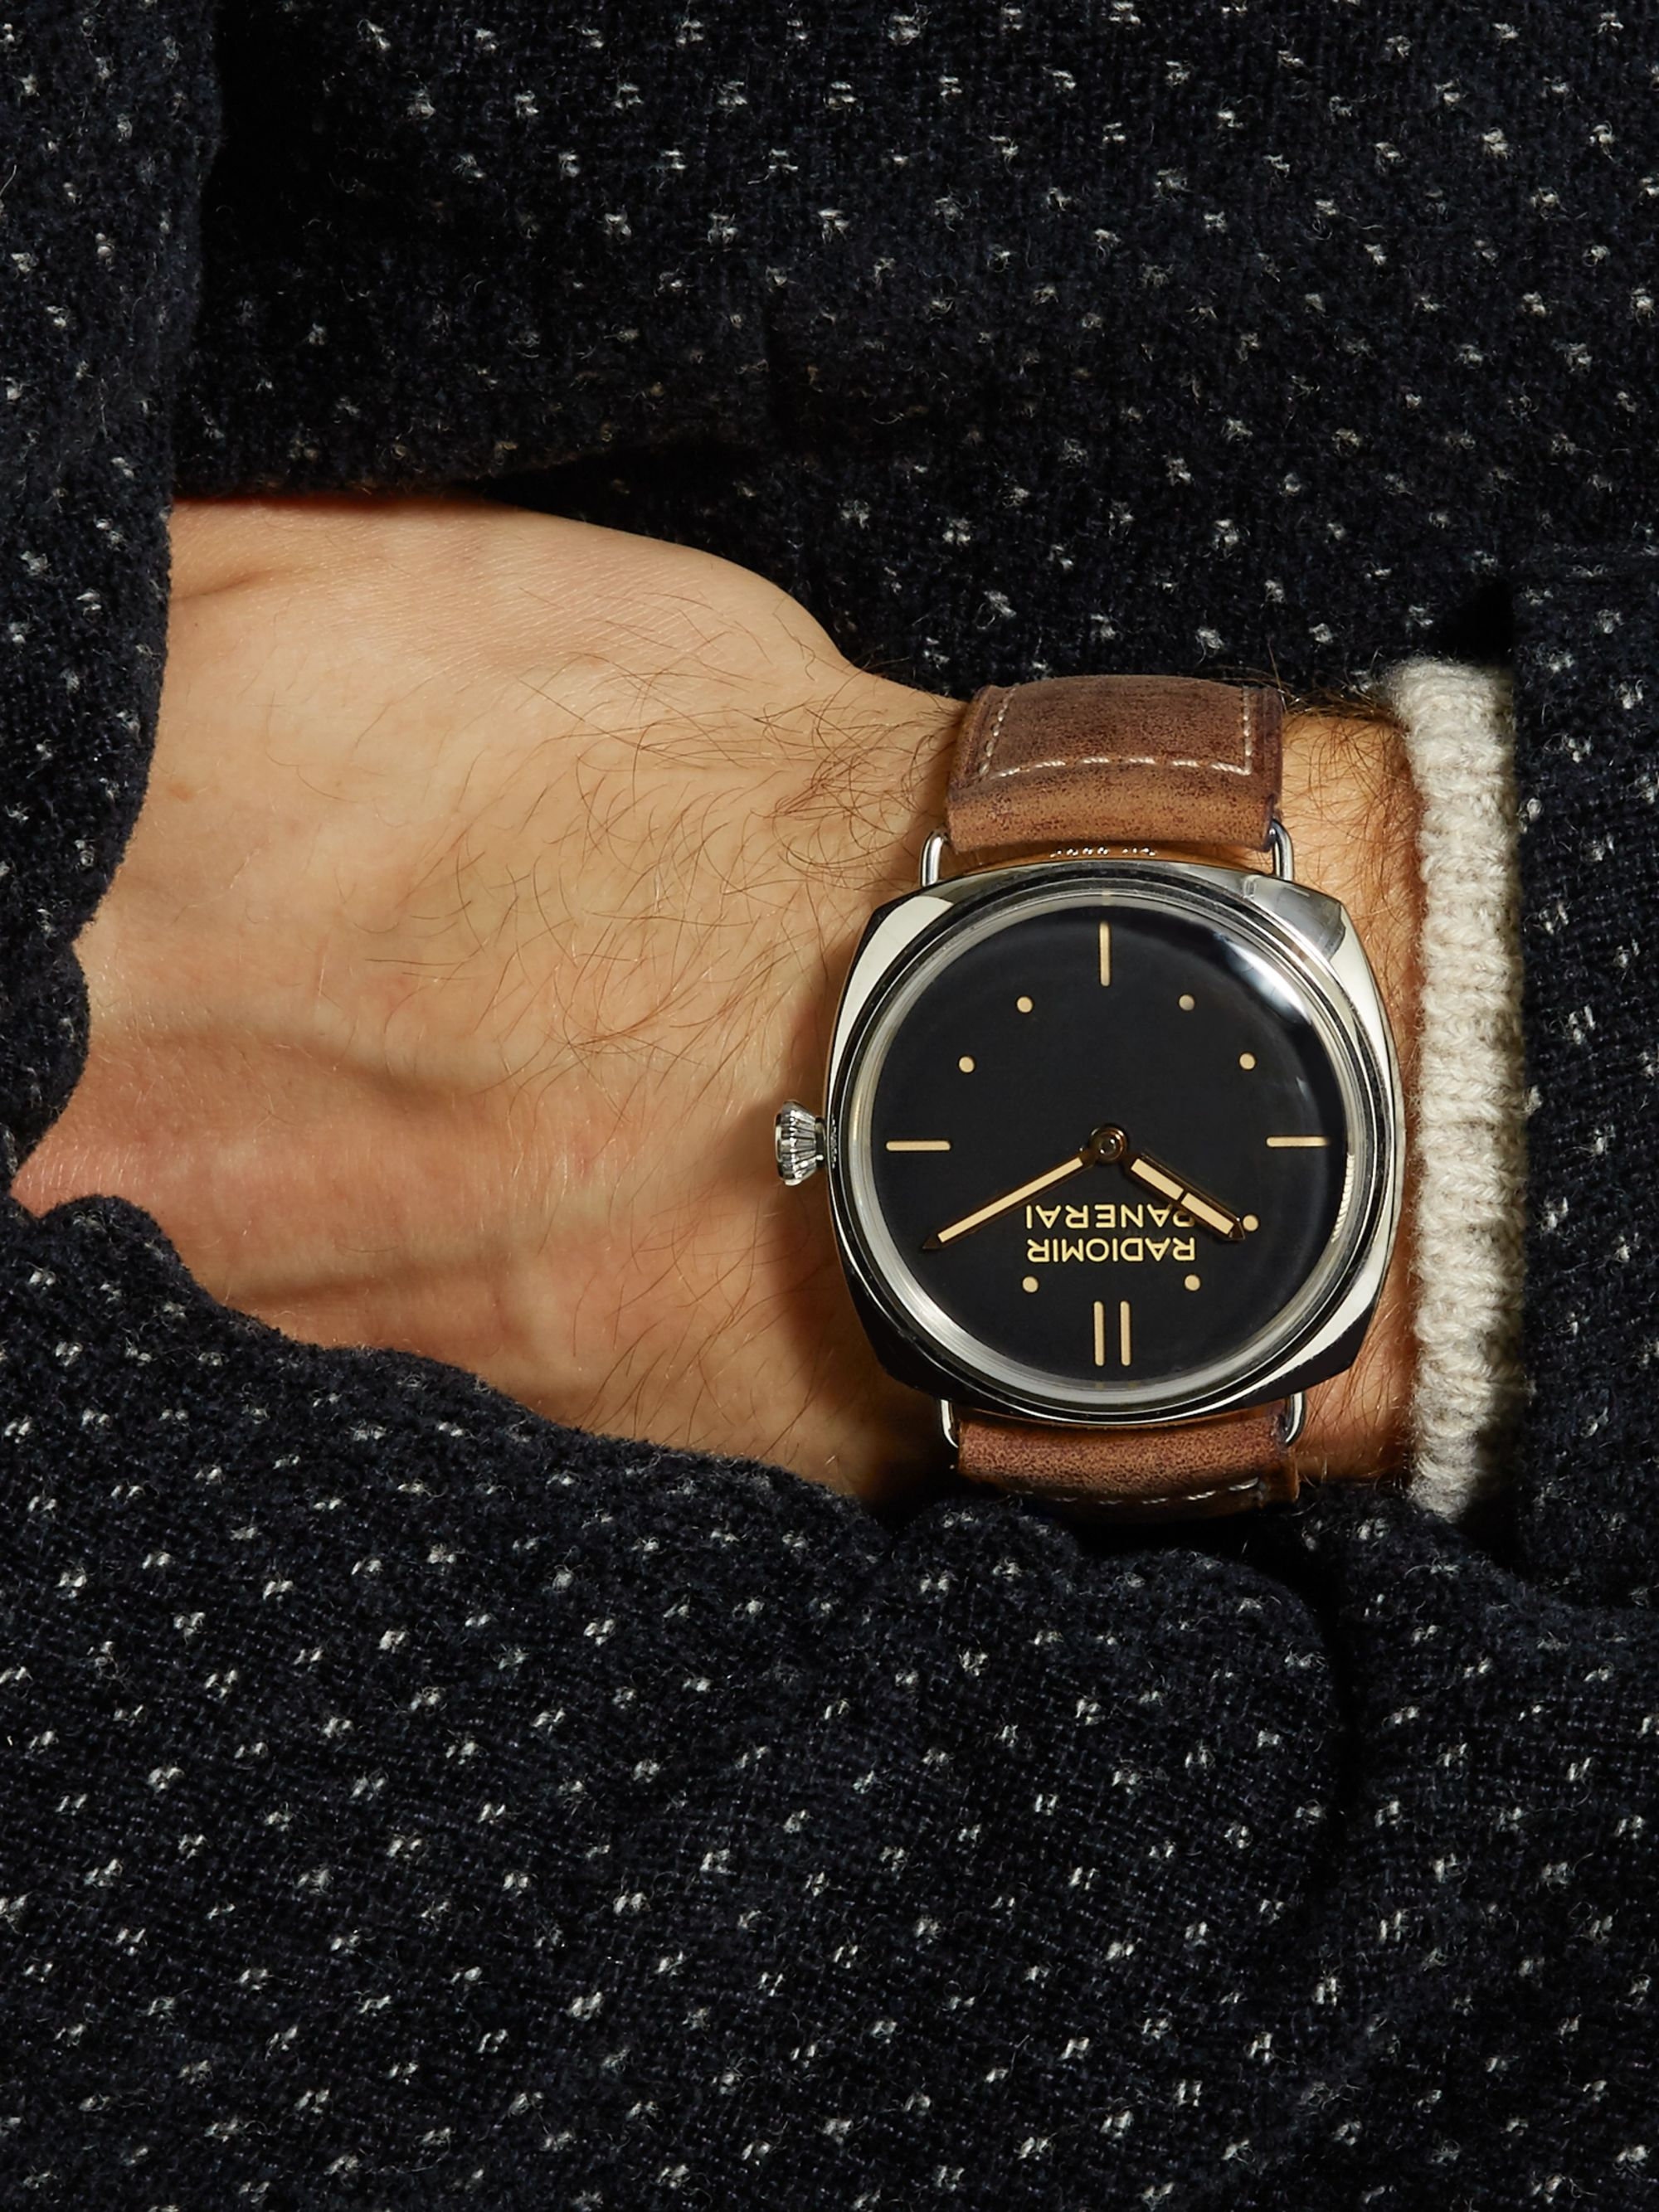 Panerai Radiomir S.L.C. 3 Days Acciaio 47mm Steel and Leather Watch, Ref. No. PAM00425